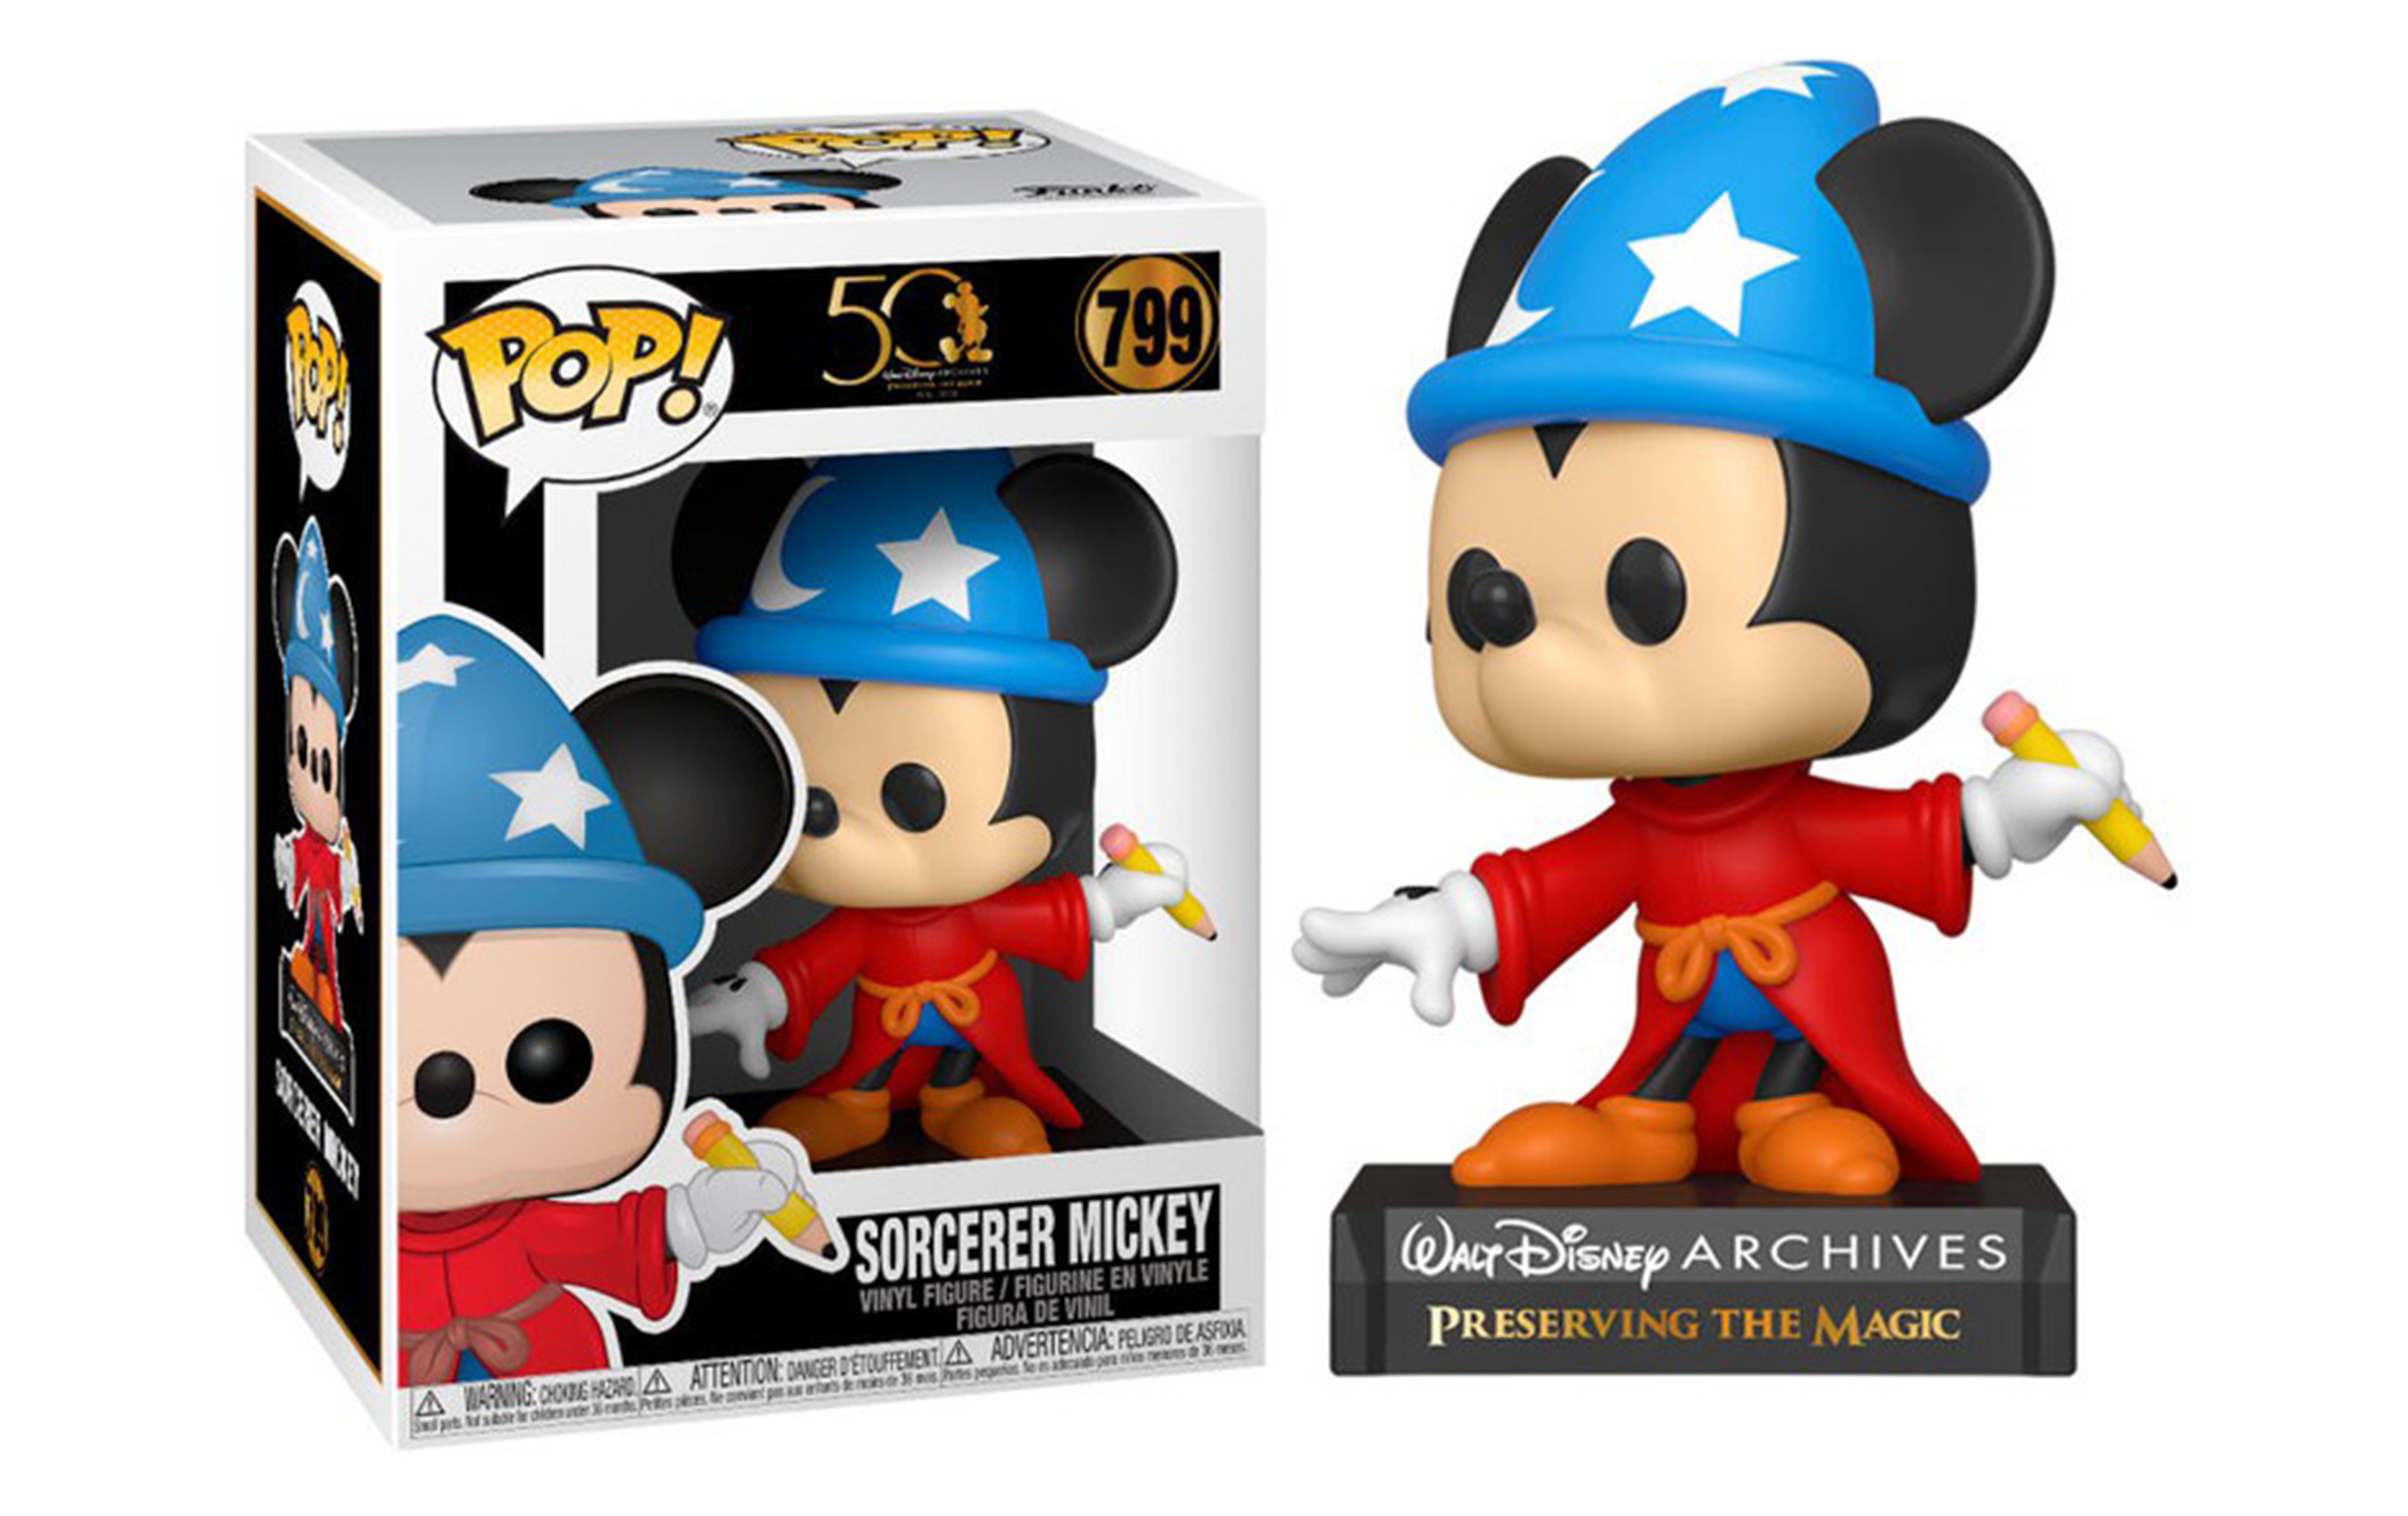 Disney Sorcerer Mickey 799 Funko POP Vinyl Figure